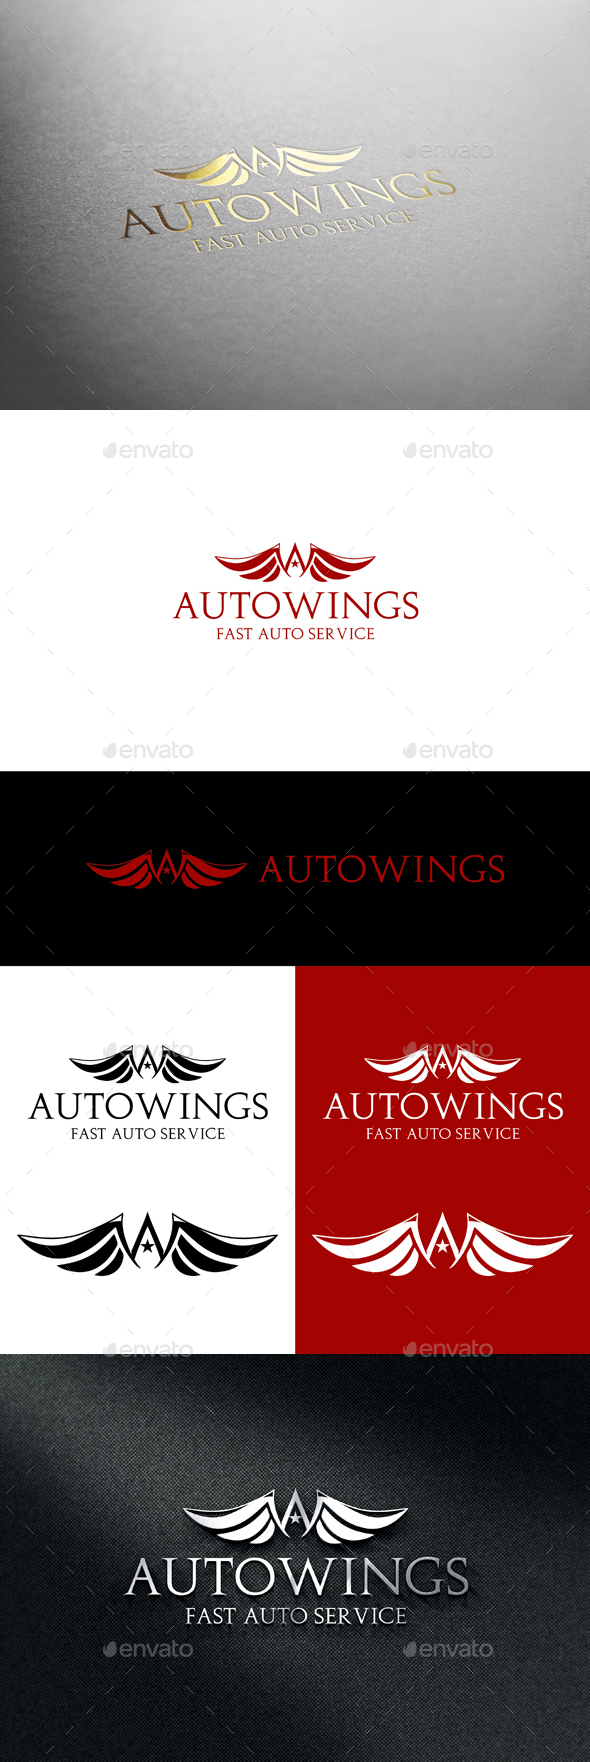 Auto Wings_v2 - Letters Logo Templates